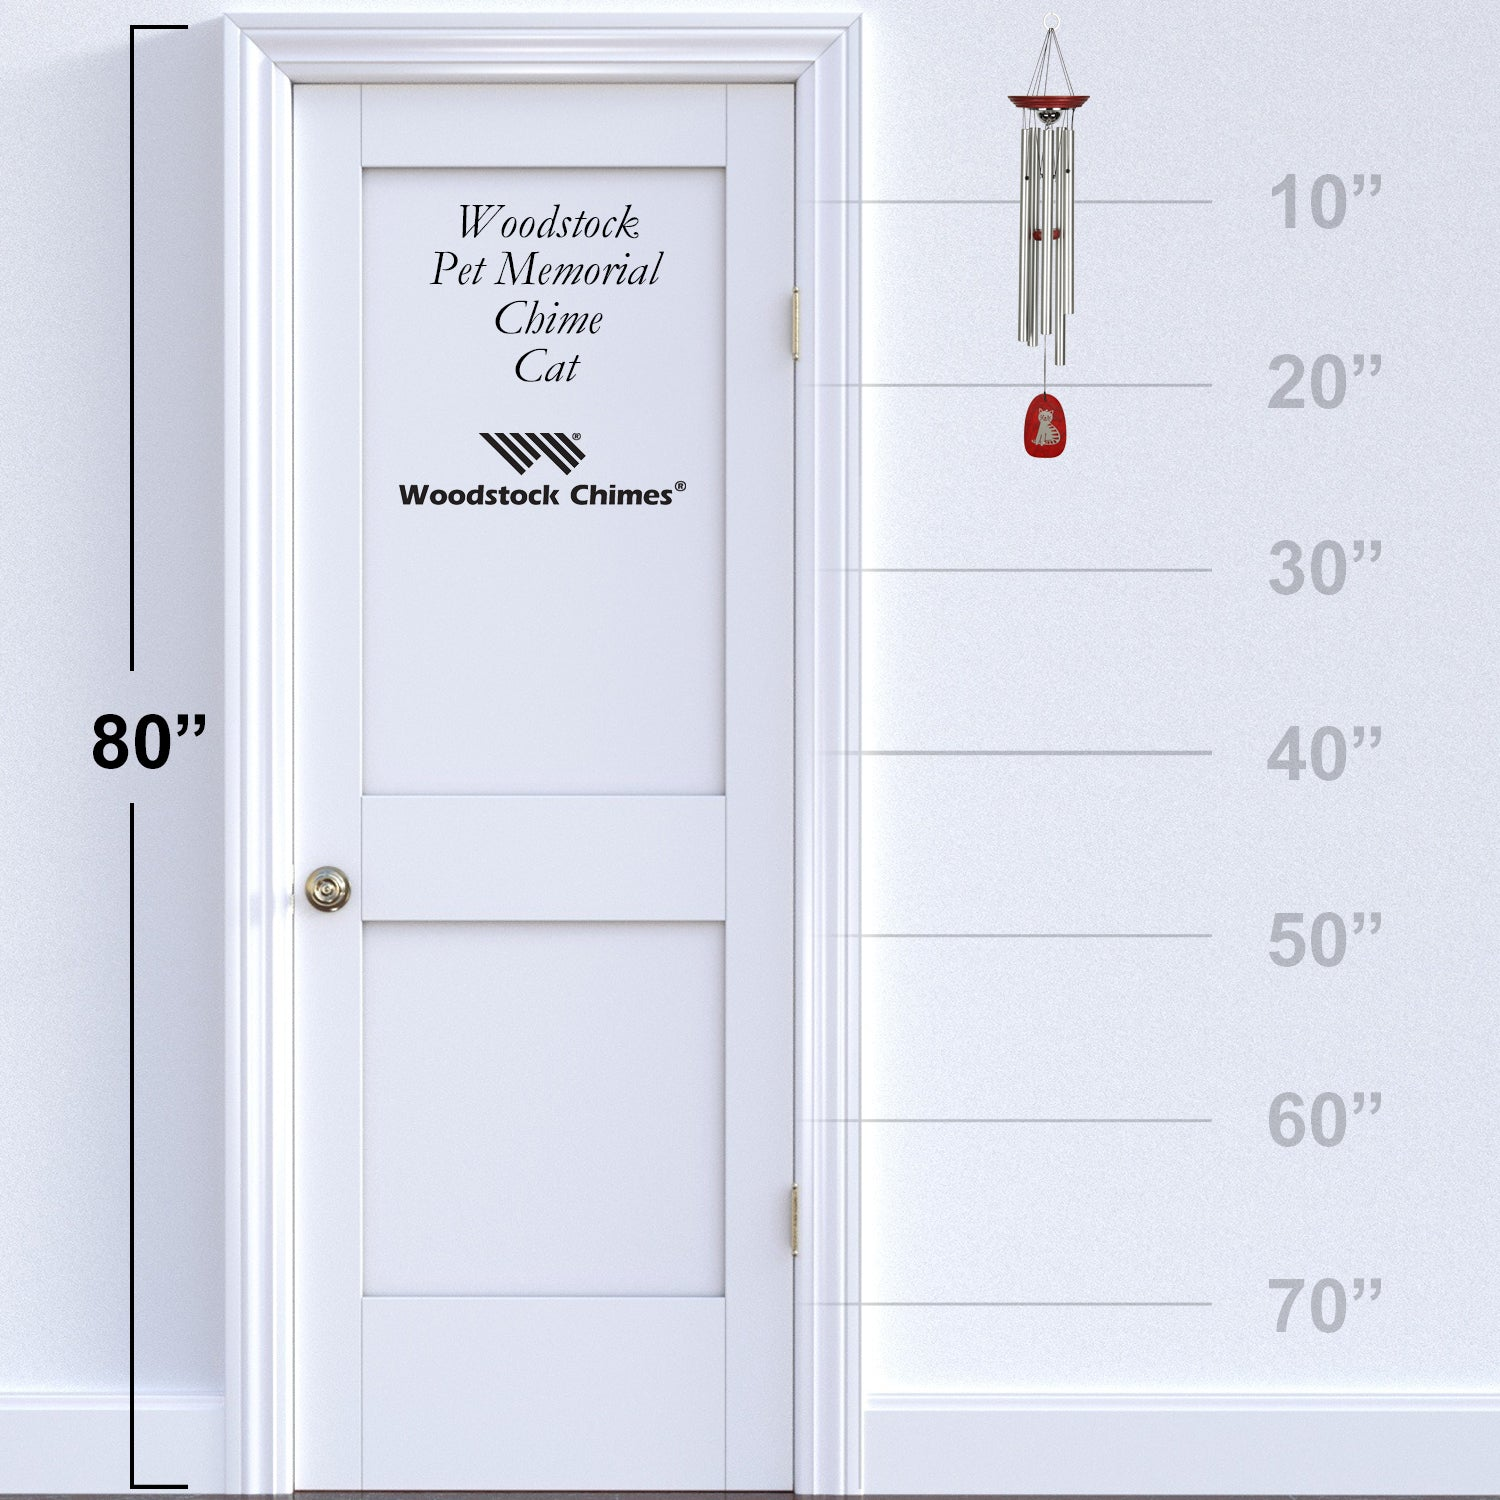 Pet Memorial Chime - Cat proportion image